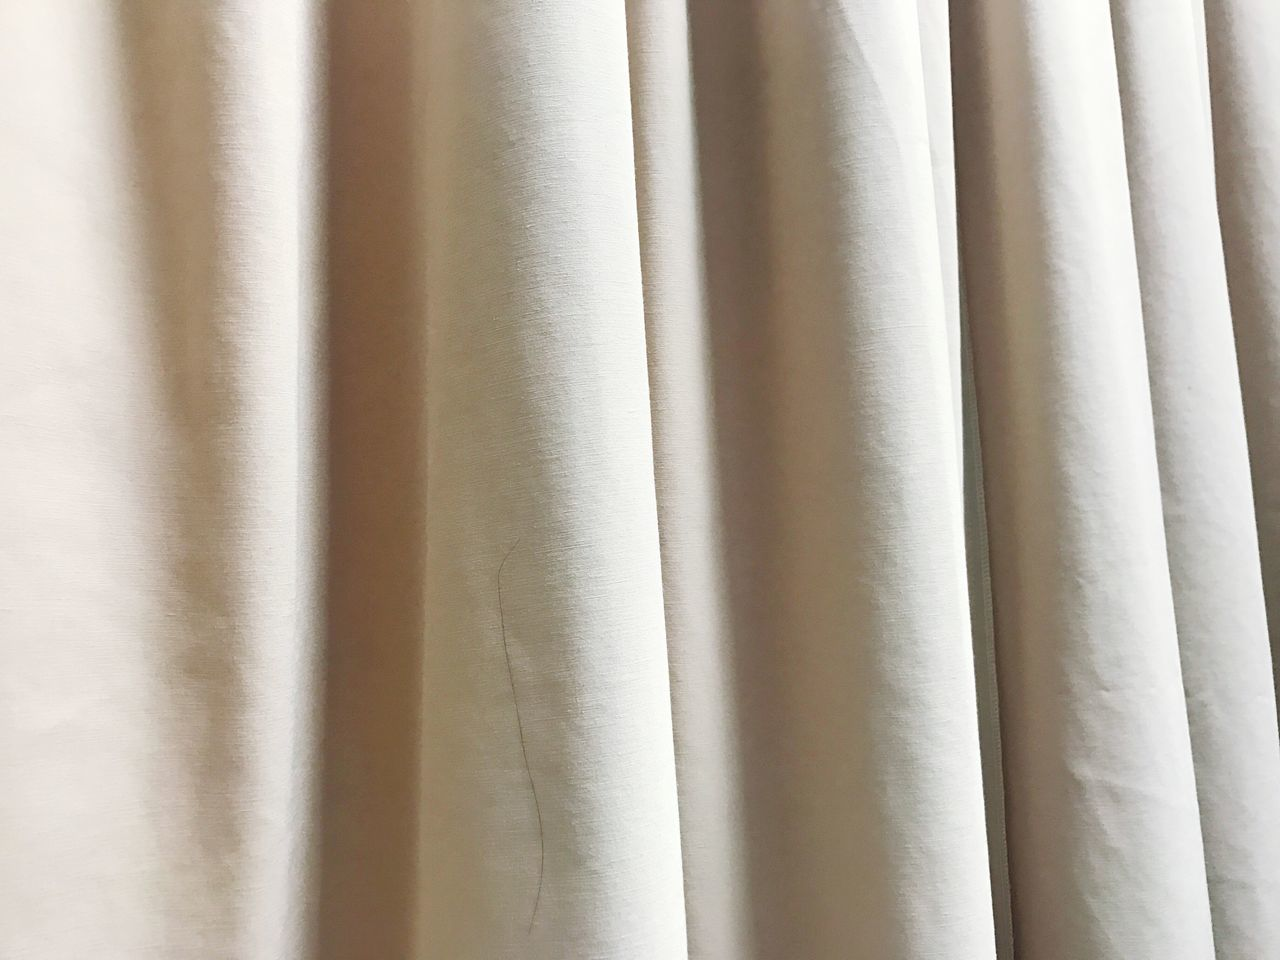 Full Frame Shot Of White Curtain